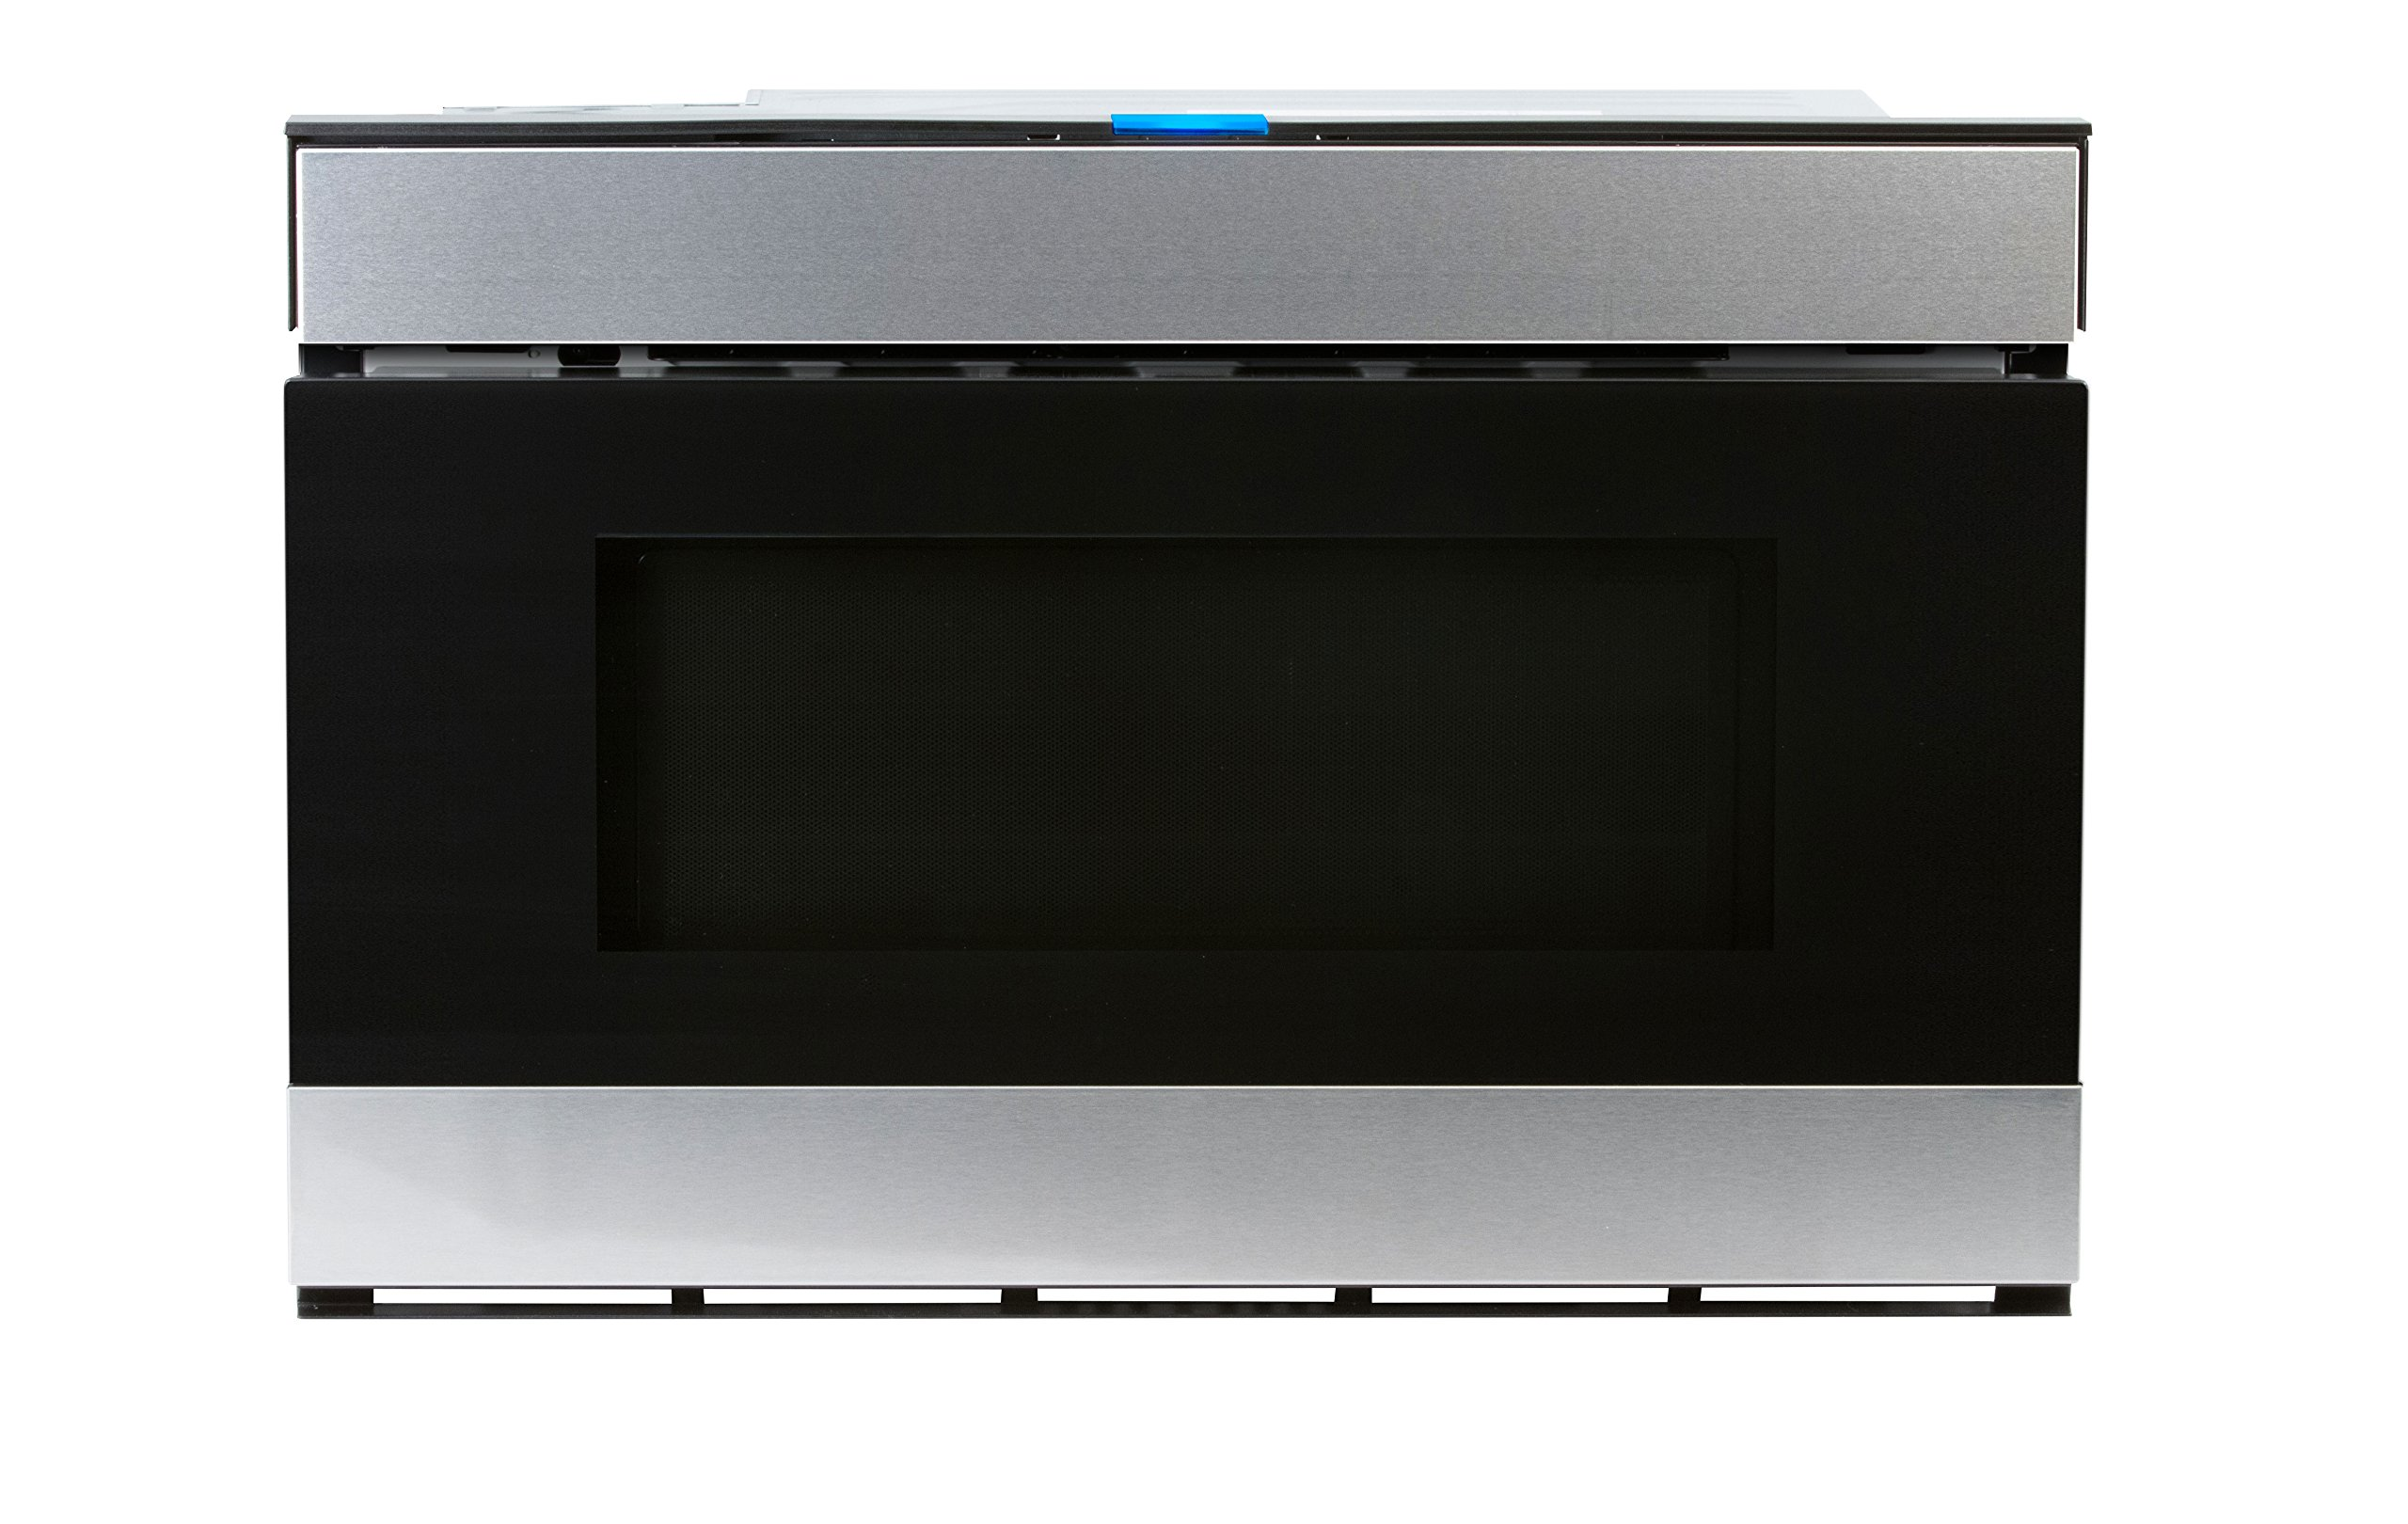 Sharp SMD2480CS 24'' Wave Microwave Drawer with 1.2 cu. ft. Capacity, Hidden Touch Glass, Motion Sensor Touch-less Access, in Stainless Steel